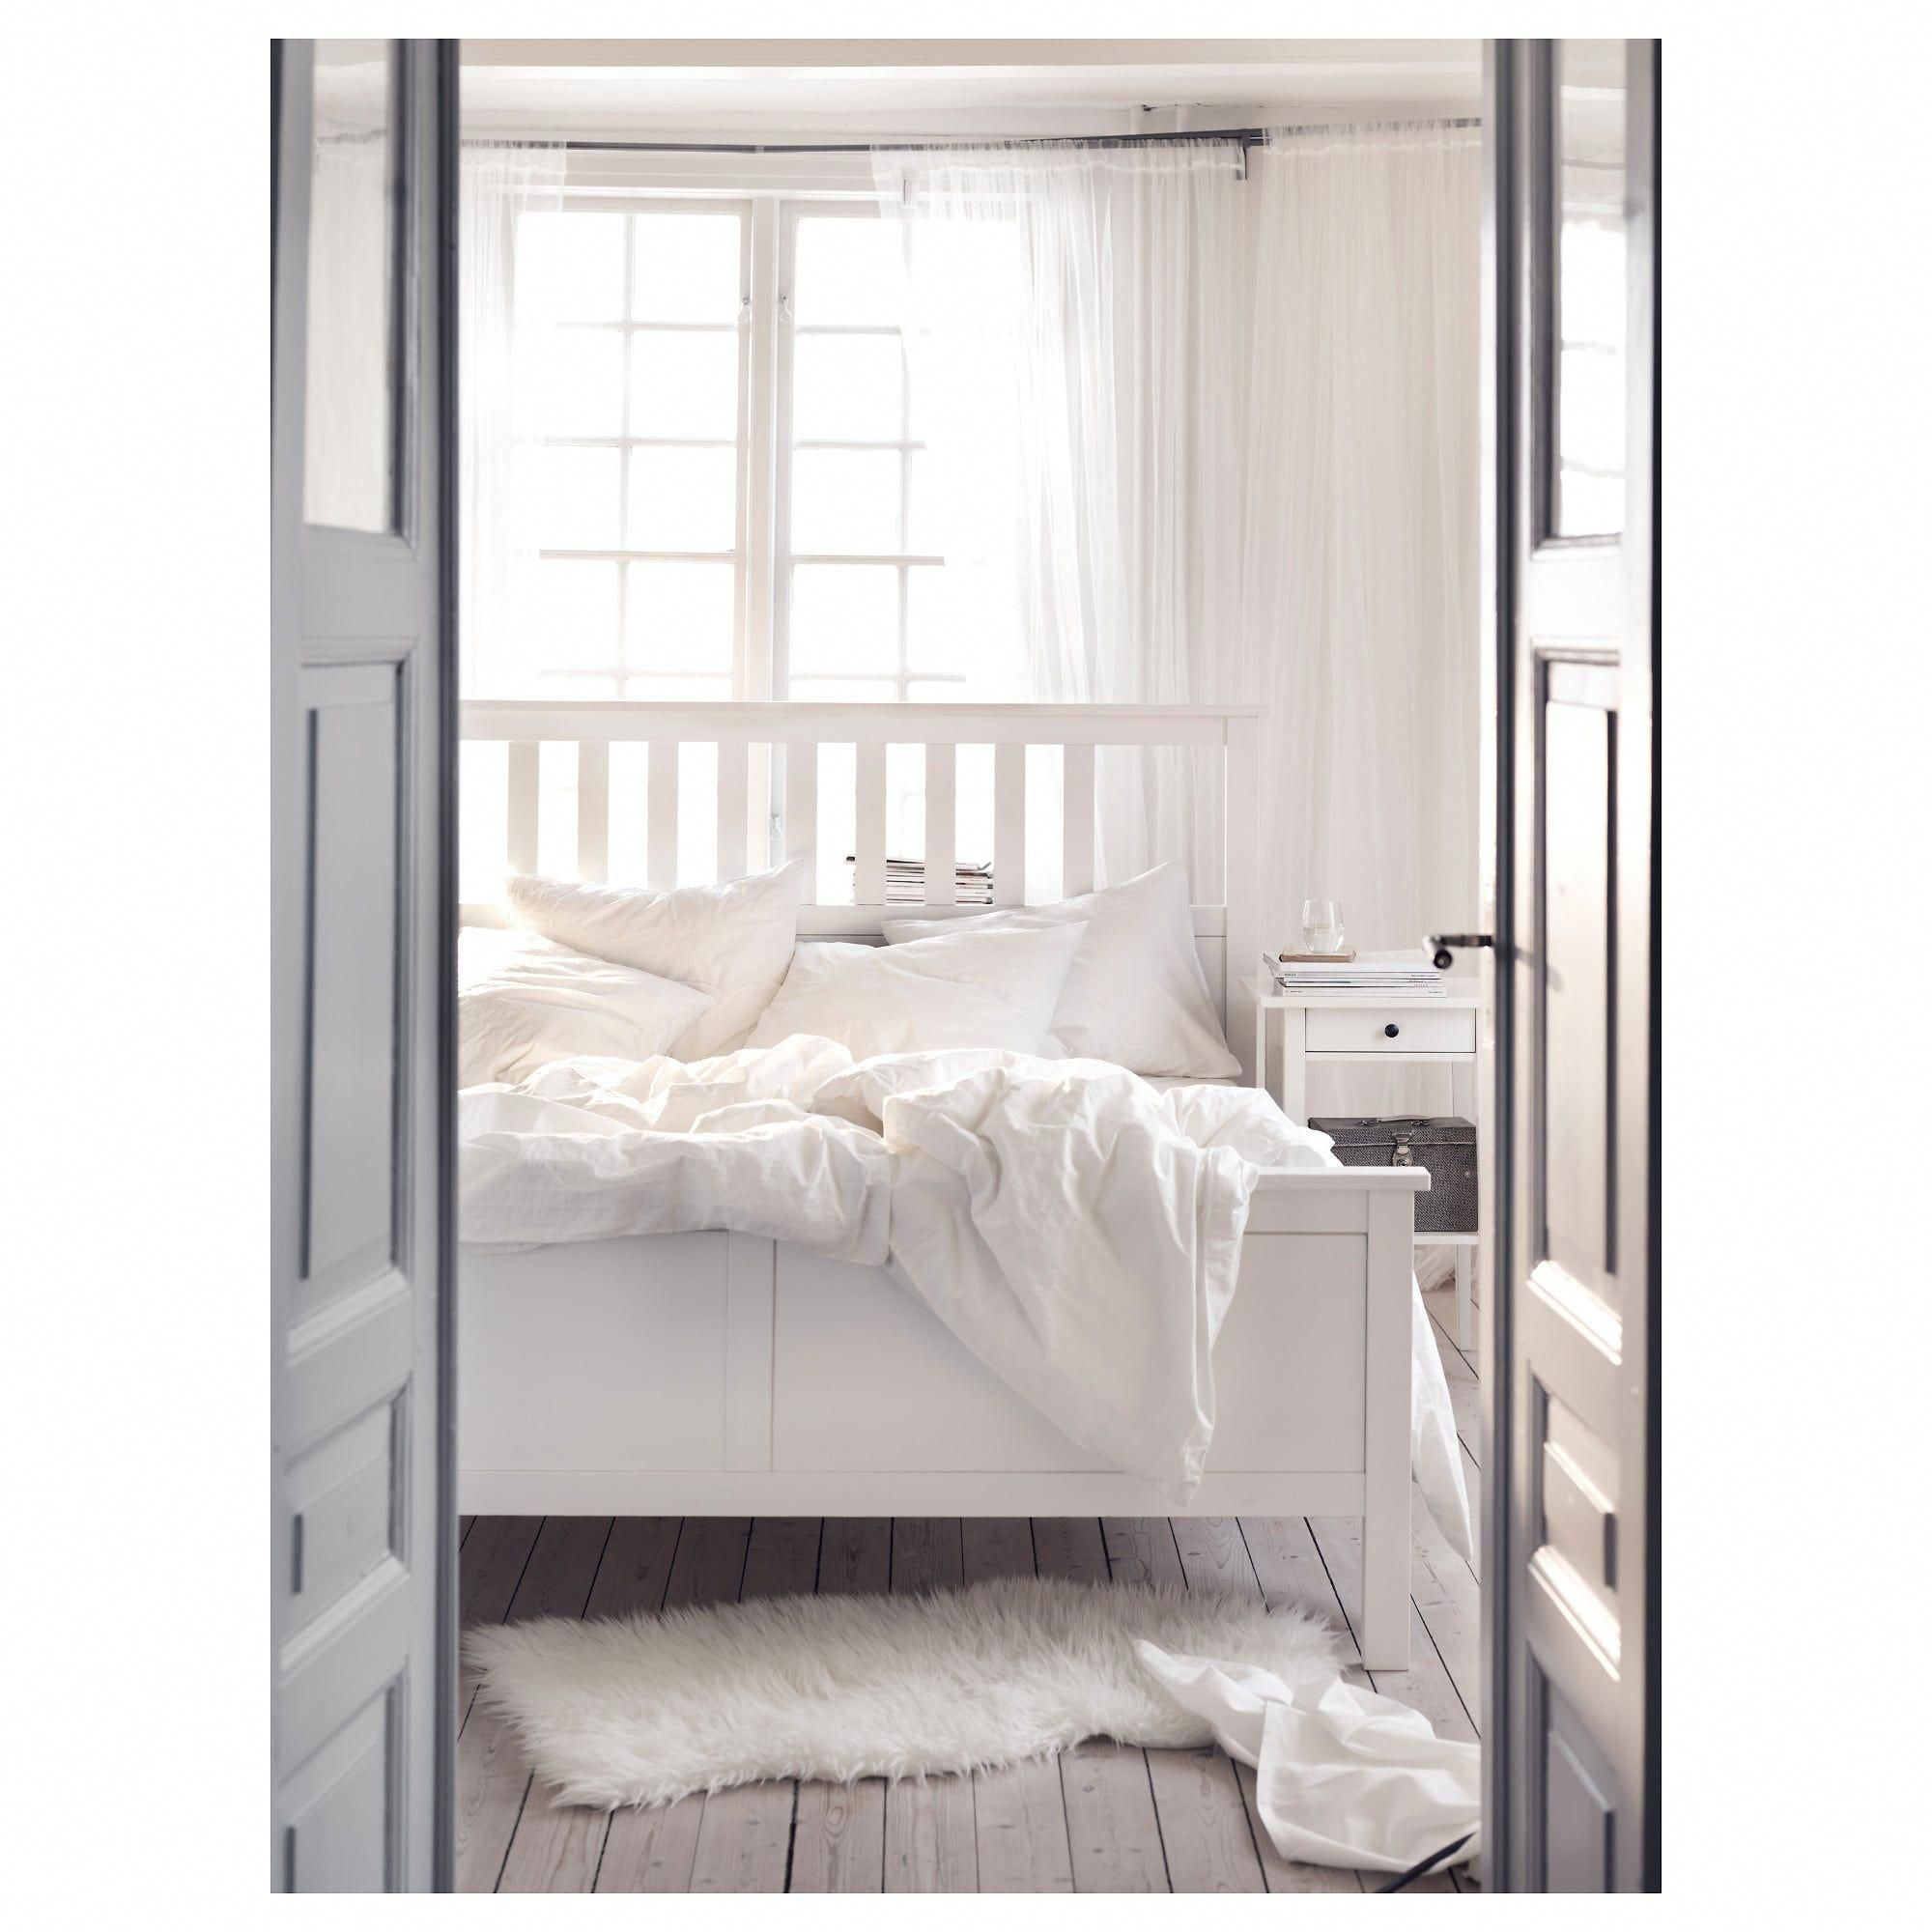 IKEA HEMNES White Stain Bed frame beds in 2020 Bed